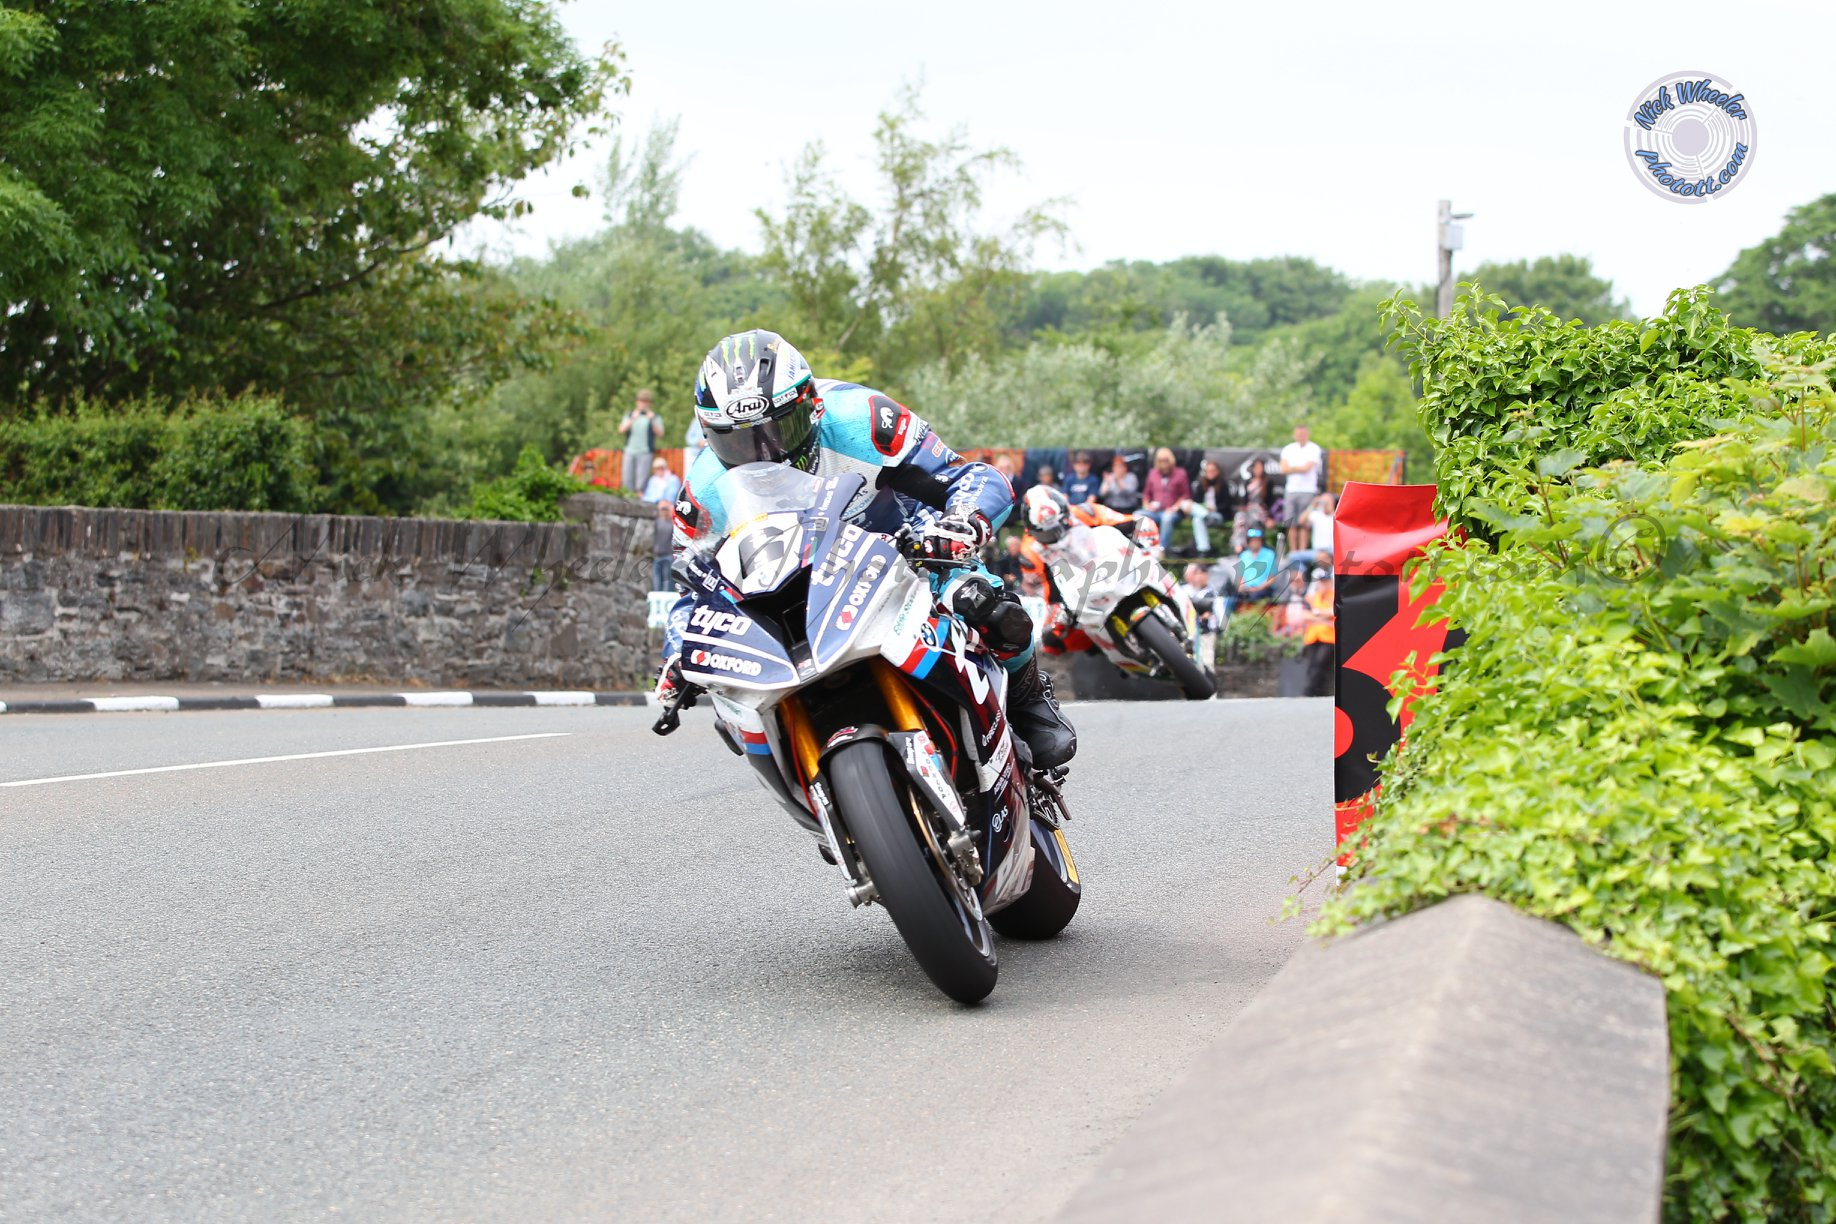 Roads Royalty Set For Pikes Peak Challenge, With 18 Times TT Winner Dunlop On The Entry List